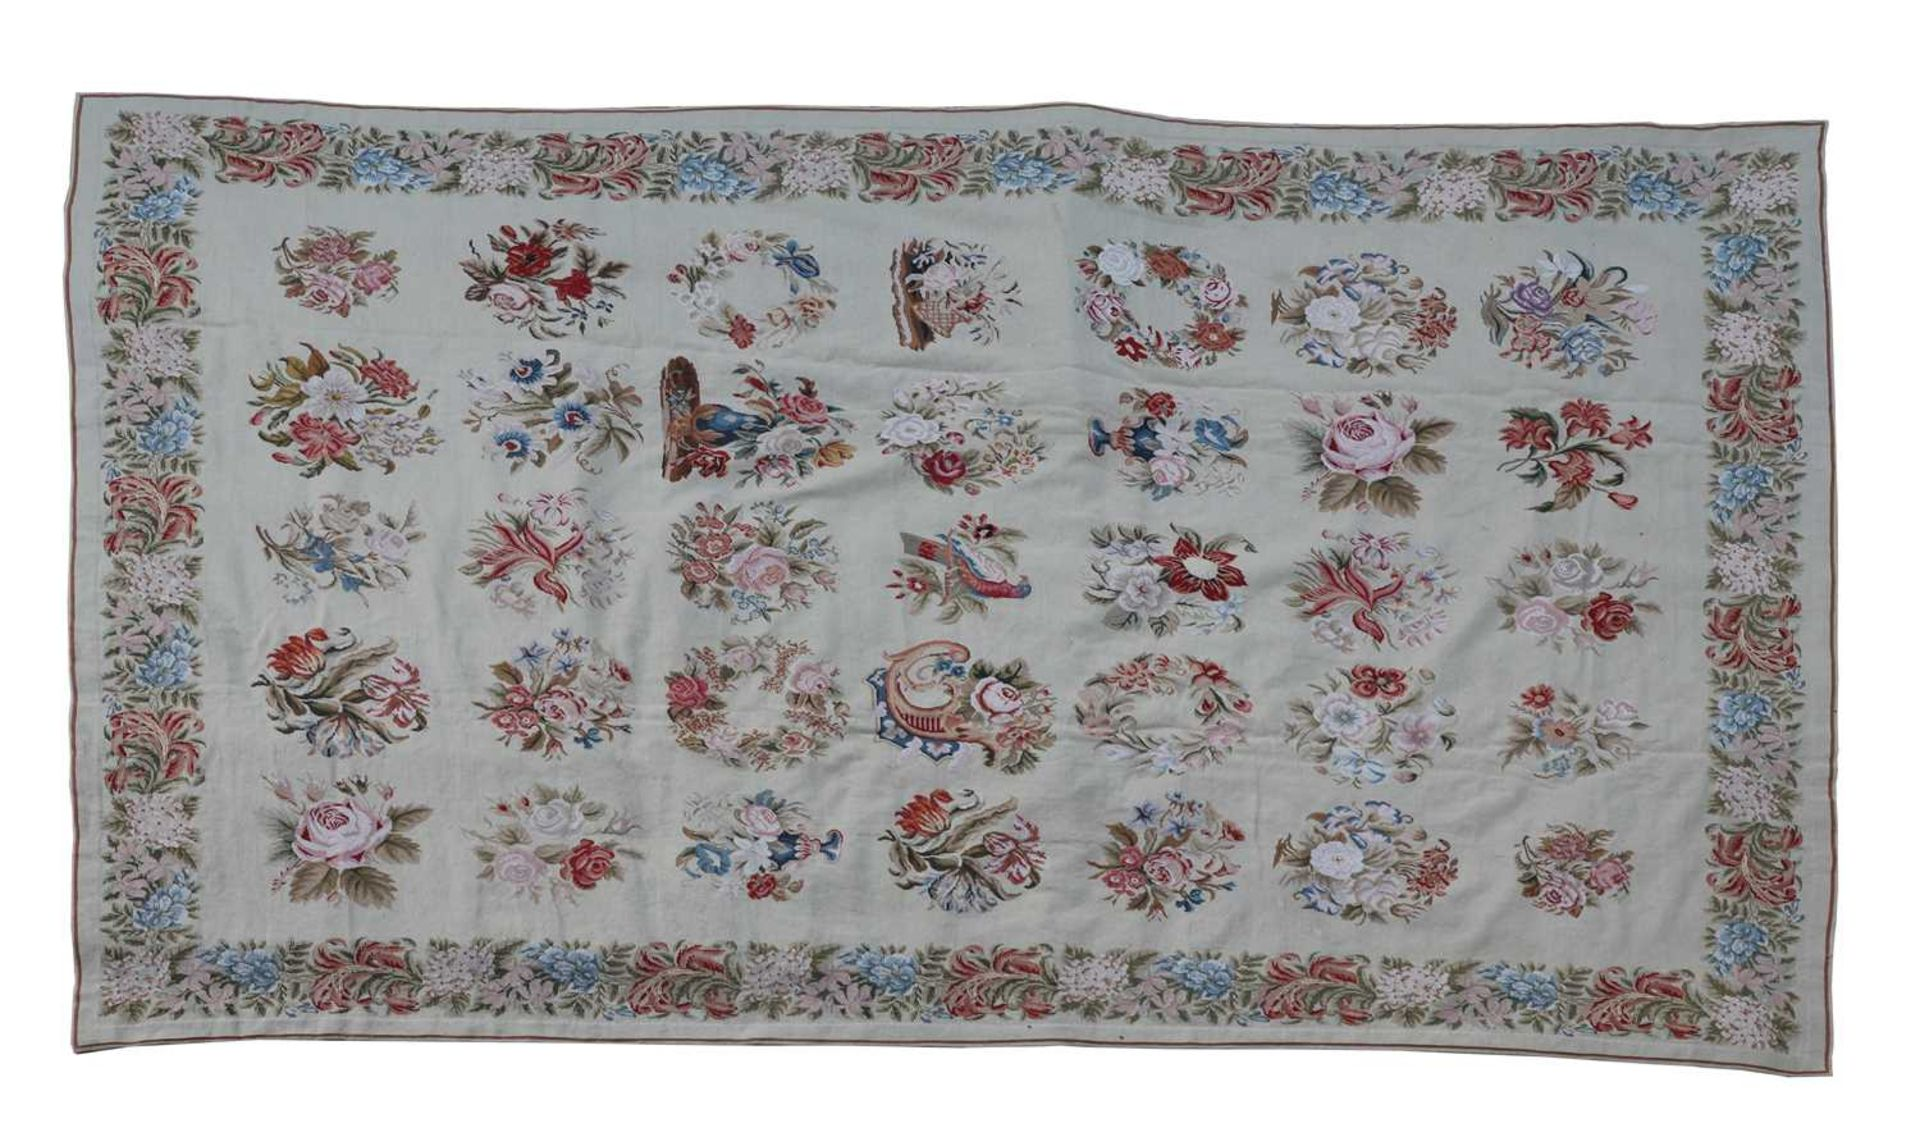 An Aubusson-style finely handwoven needlepoint carpet,